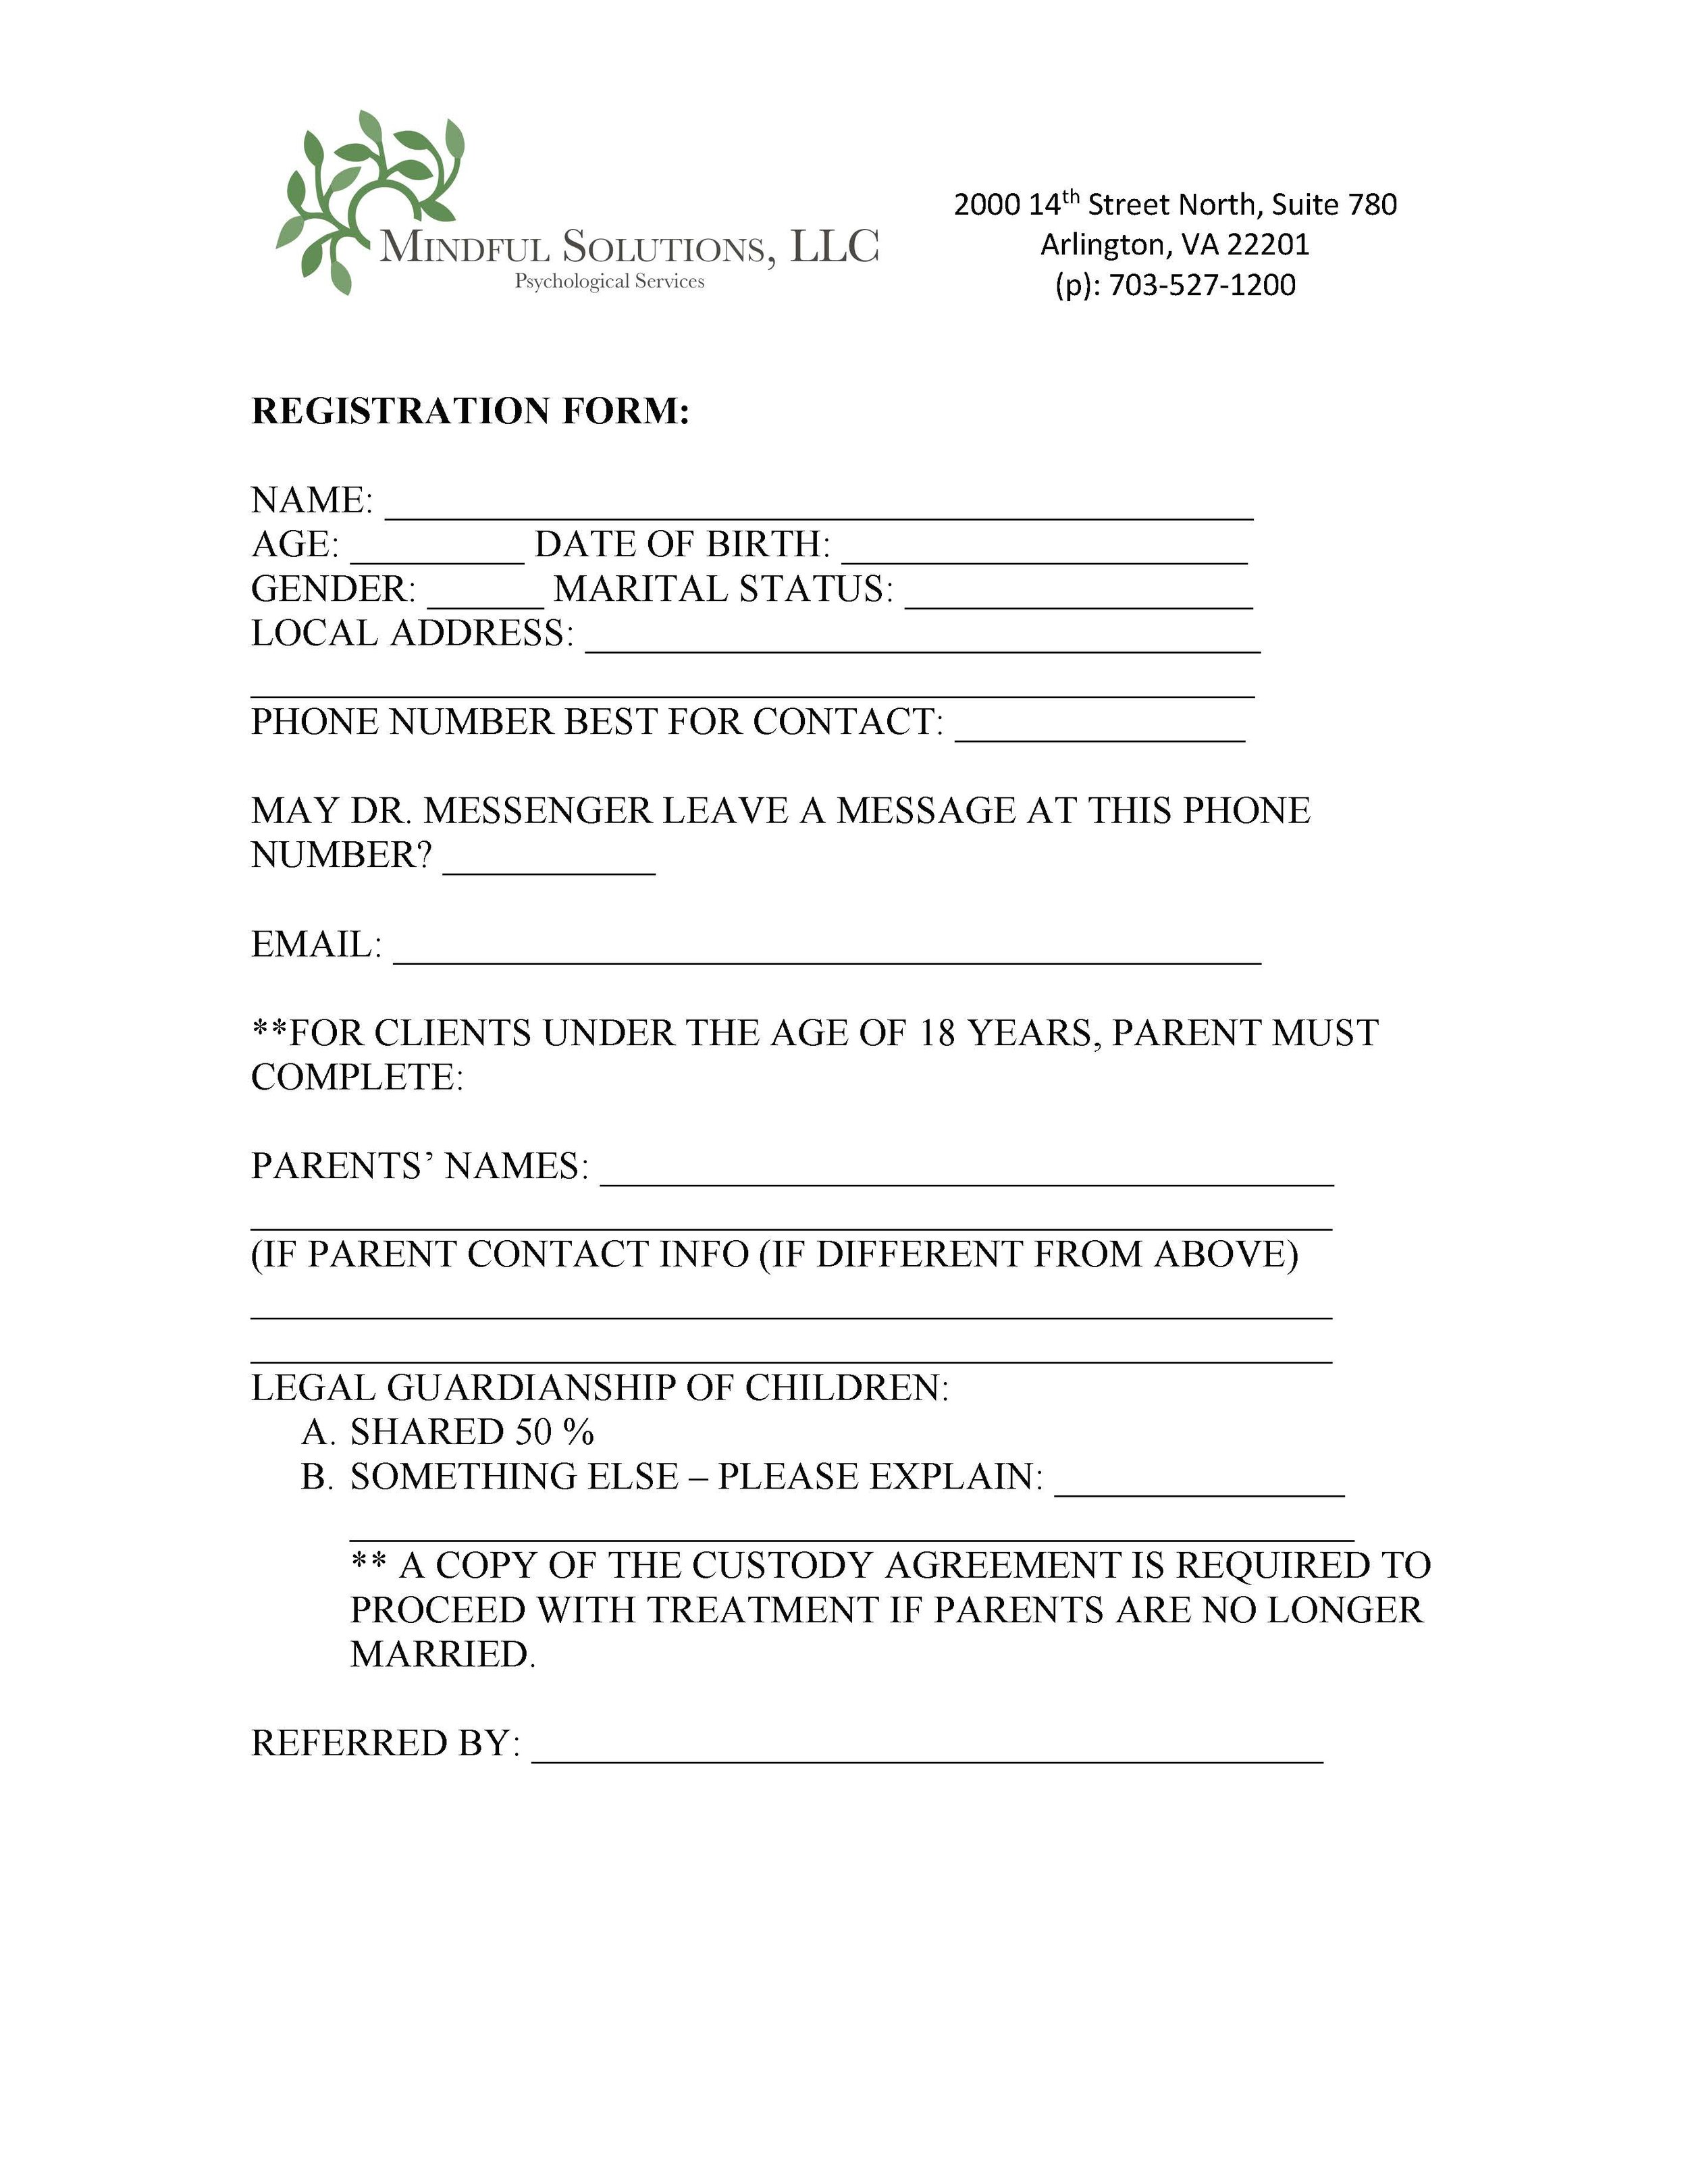 Registration Form -